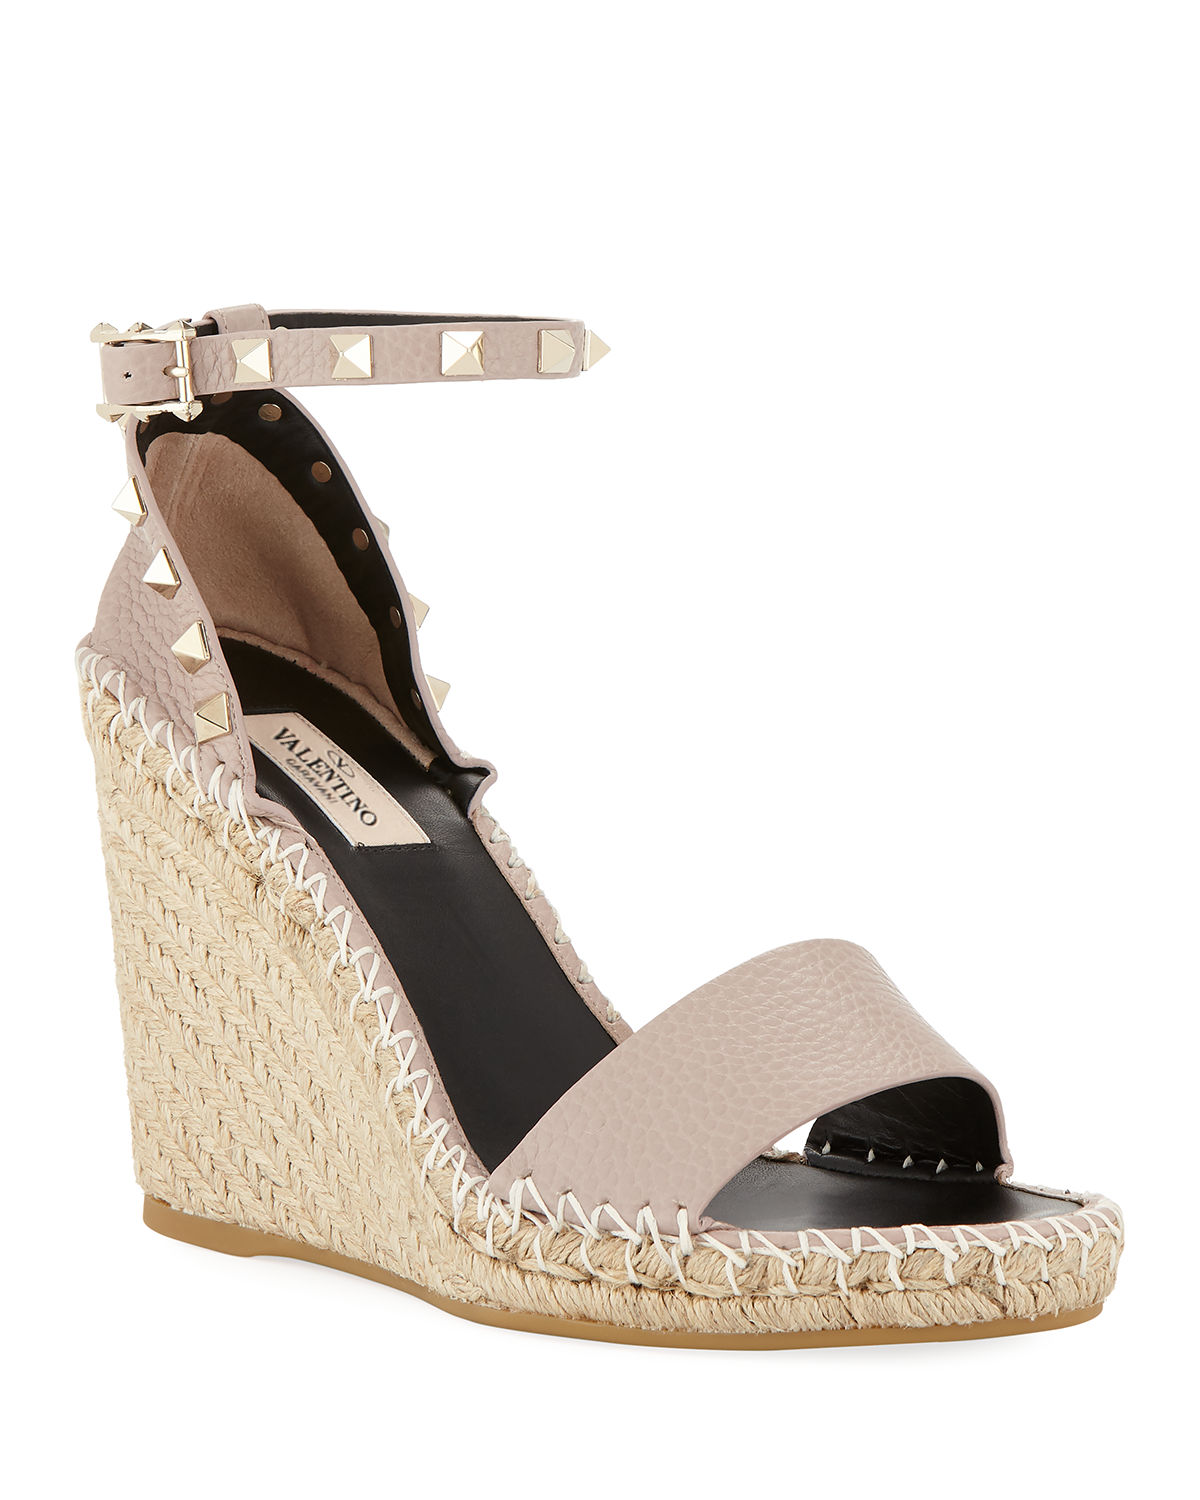 5161cd206f Valentino Garavani Rockstud Double Espadrille Wedge Sandals | Neiman ...